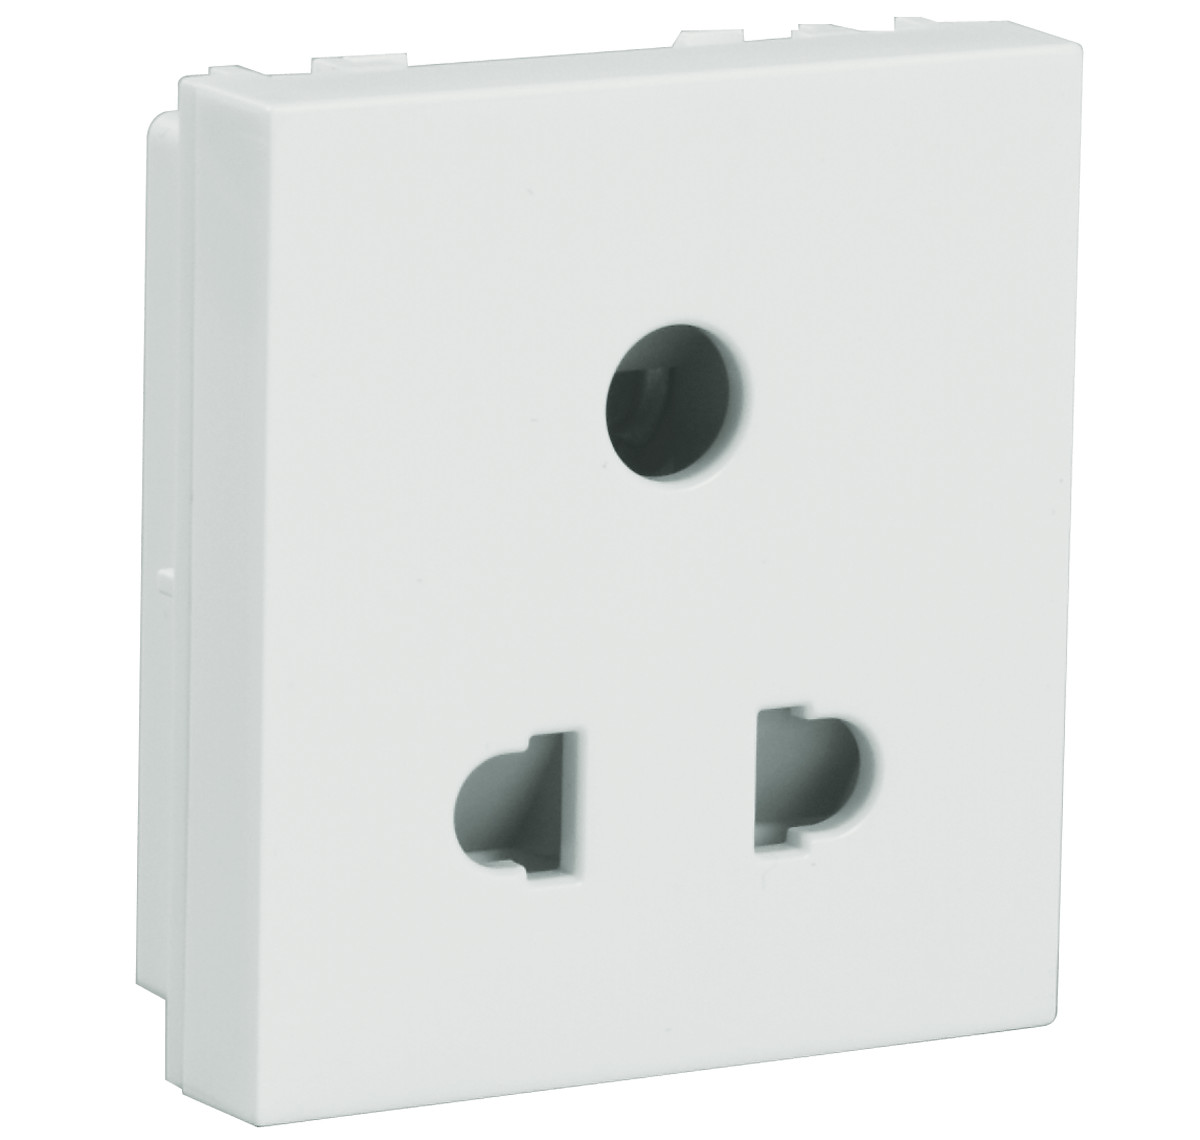 6A 3 Pin Shuttered Socket